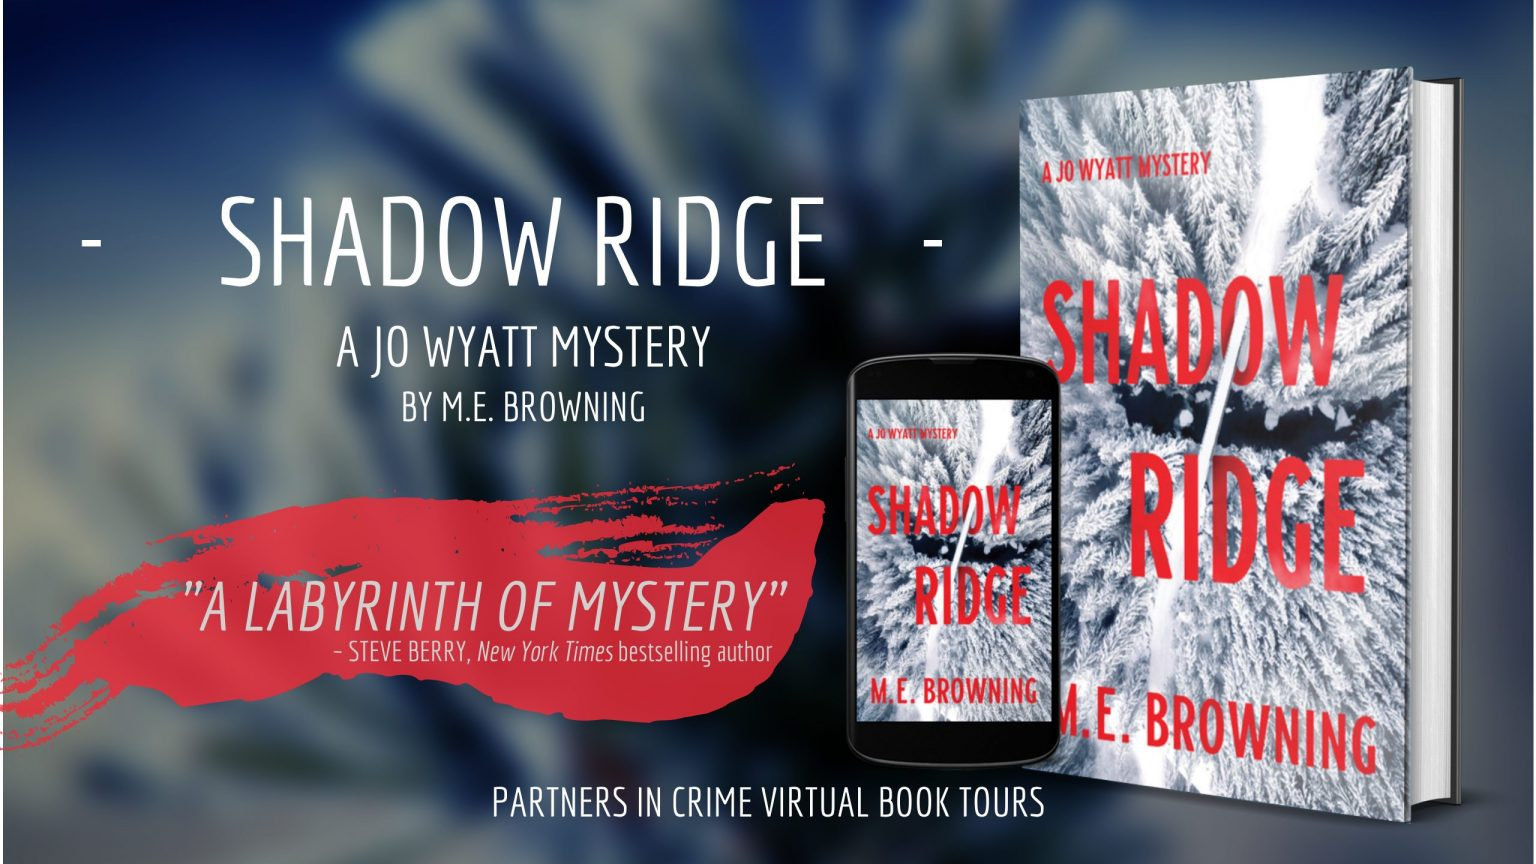 One (1) winner will receive an Amazon.com Gift Card and two (2) winners will each receive a physical copy of Shadow Ridge by M.E. Browning (Open to U.S. and Canada addresses only)